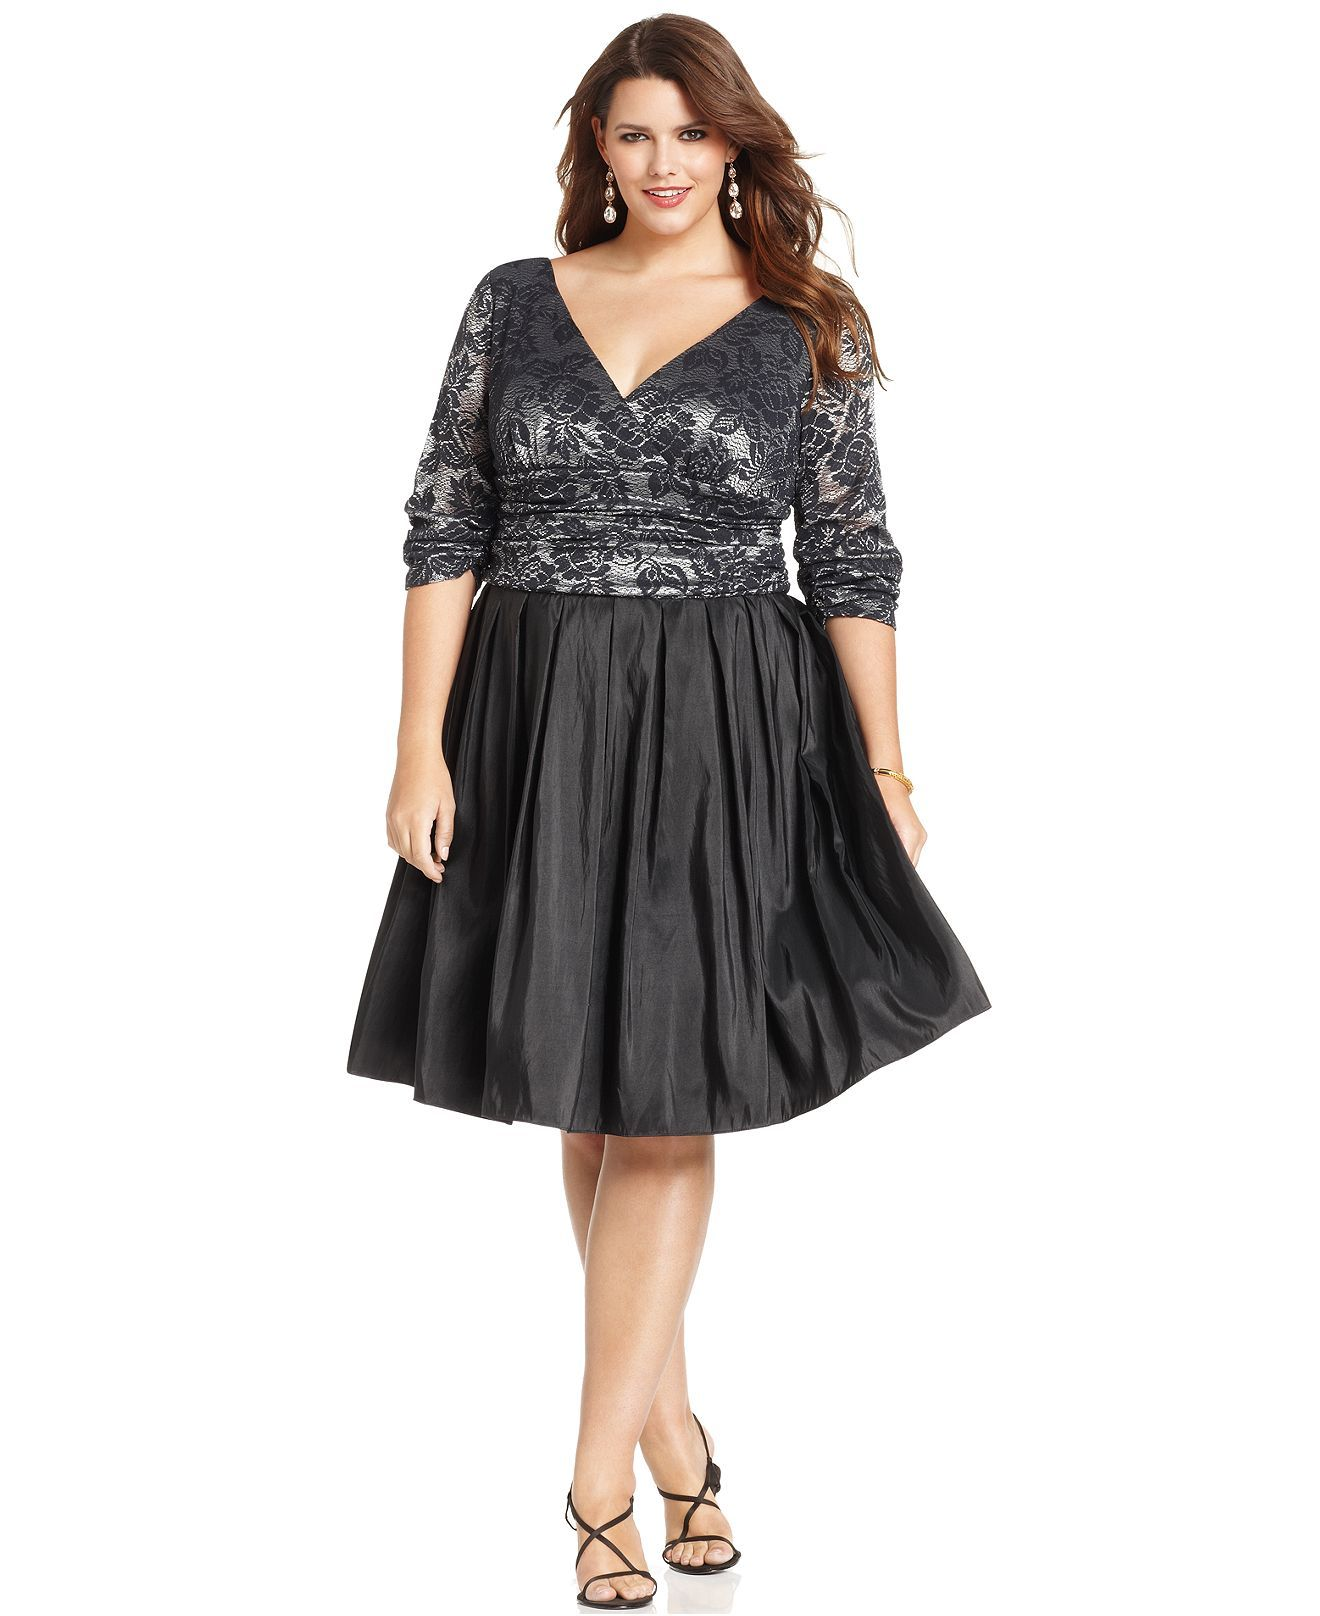 sl fashions plus size dress, three-quarter-sleeve metallic lace a